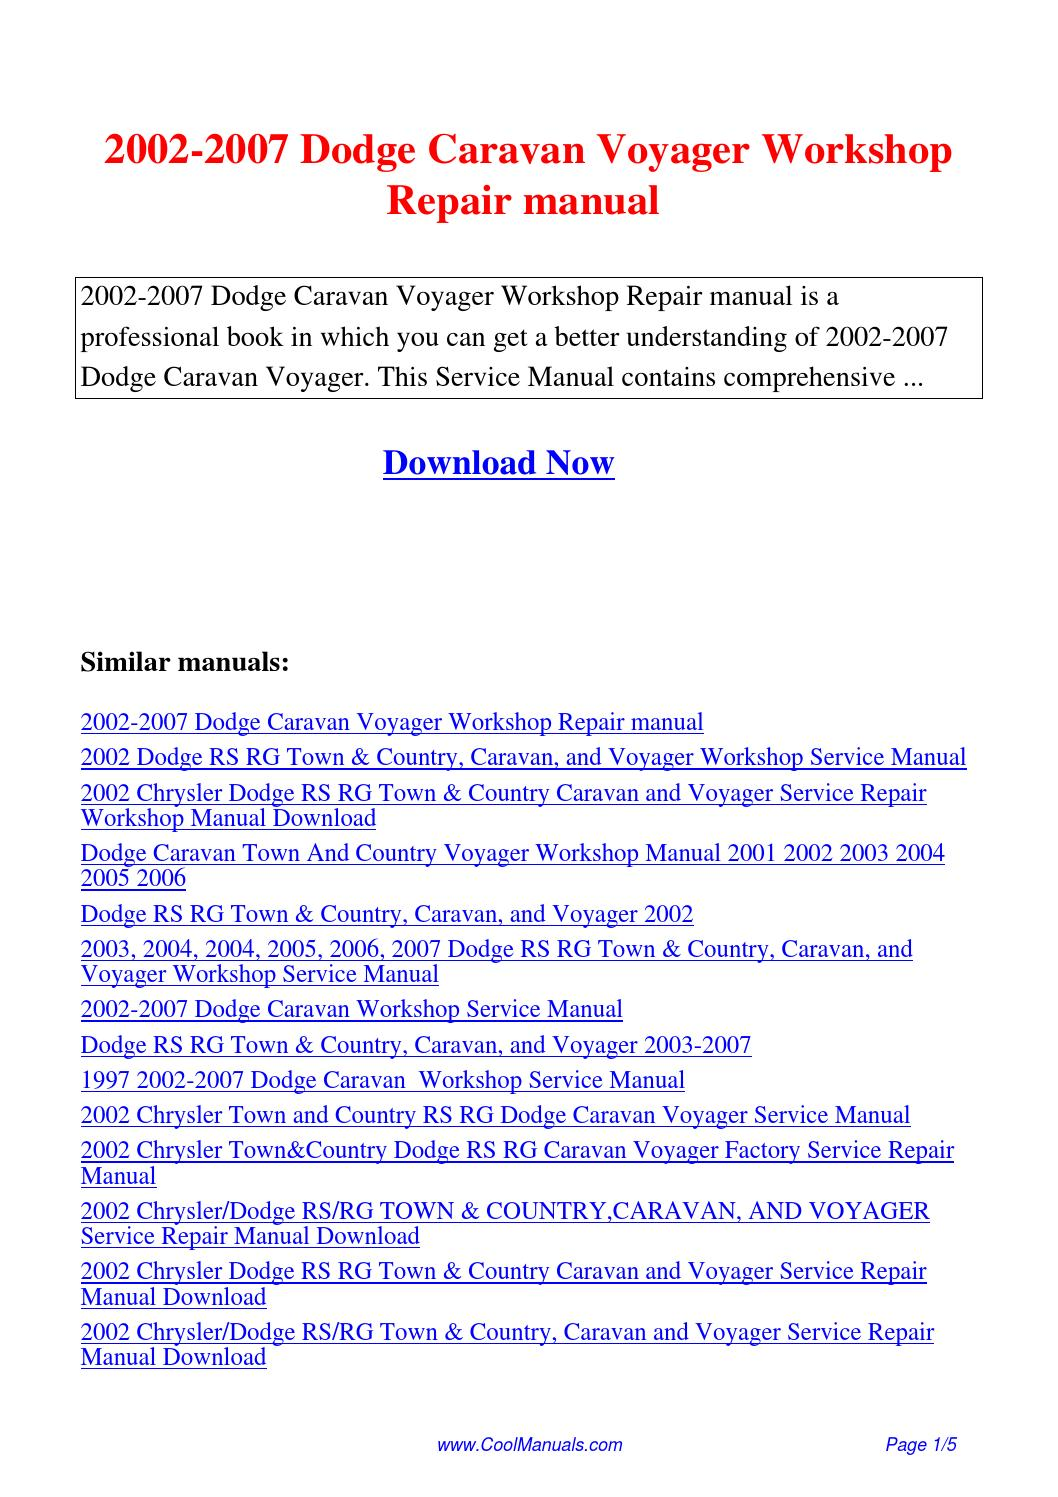 2002-2007 Dodge Caravan Voyager Workshop Repair manual.pdf by Linda Pong -  issuu